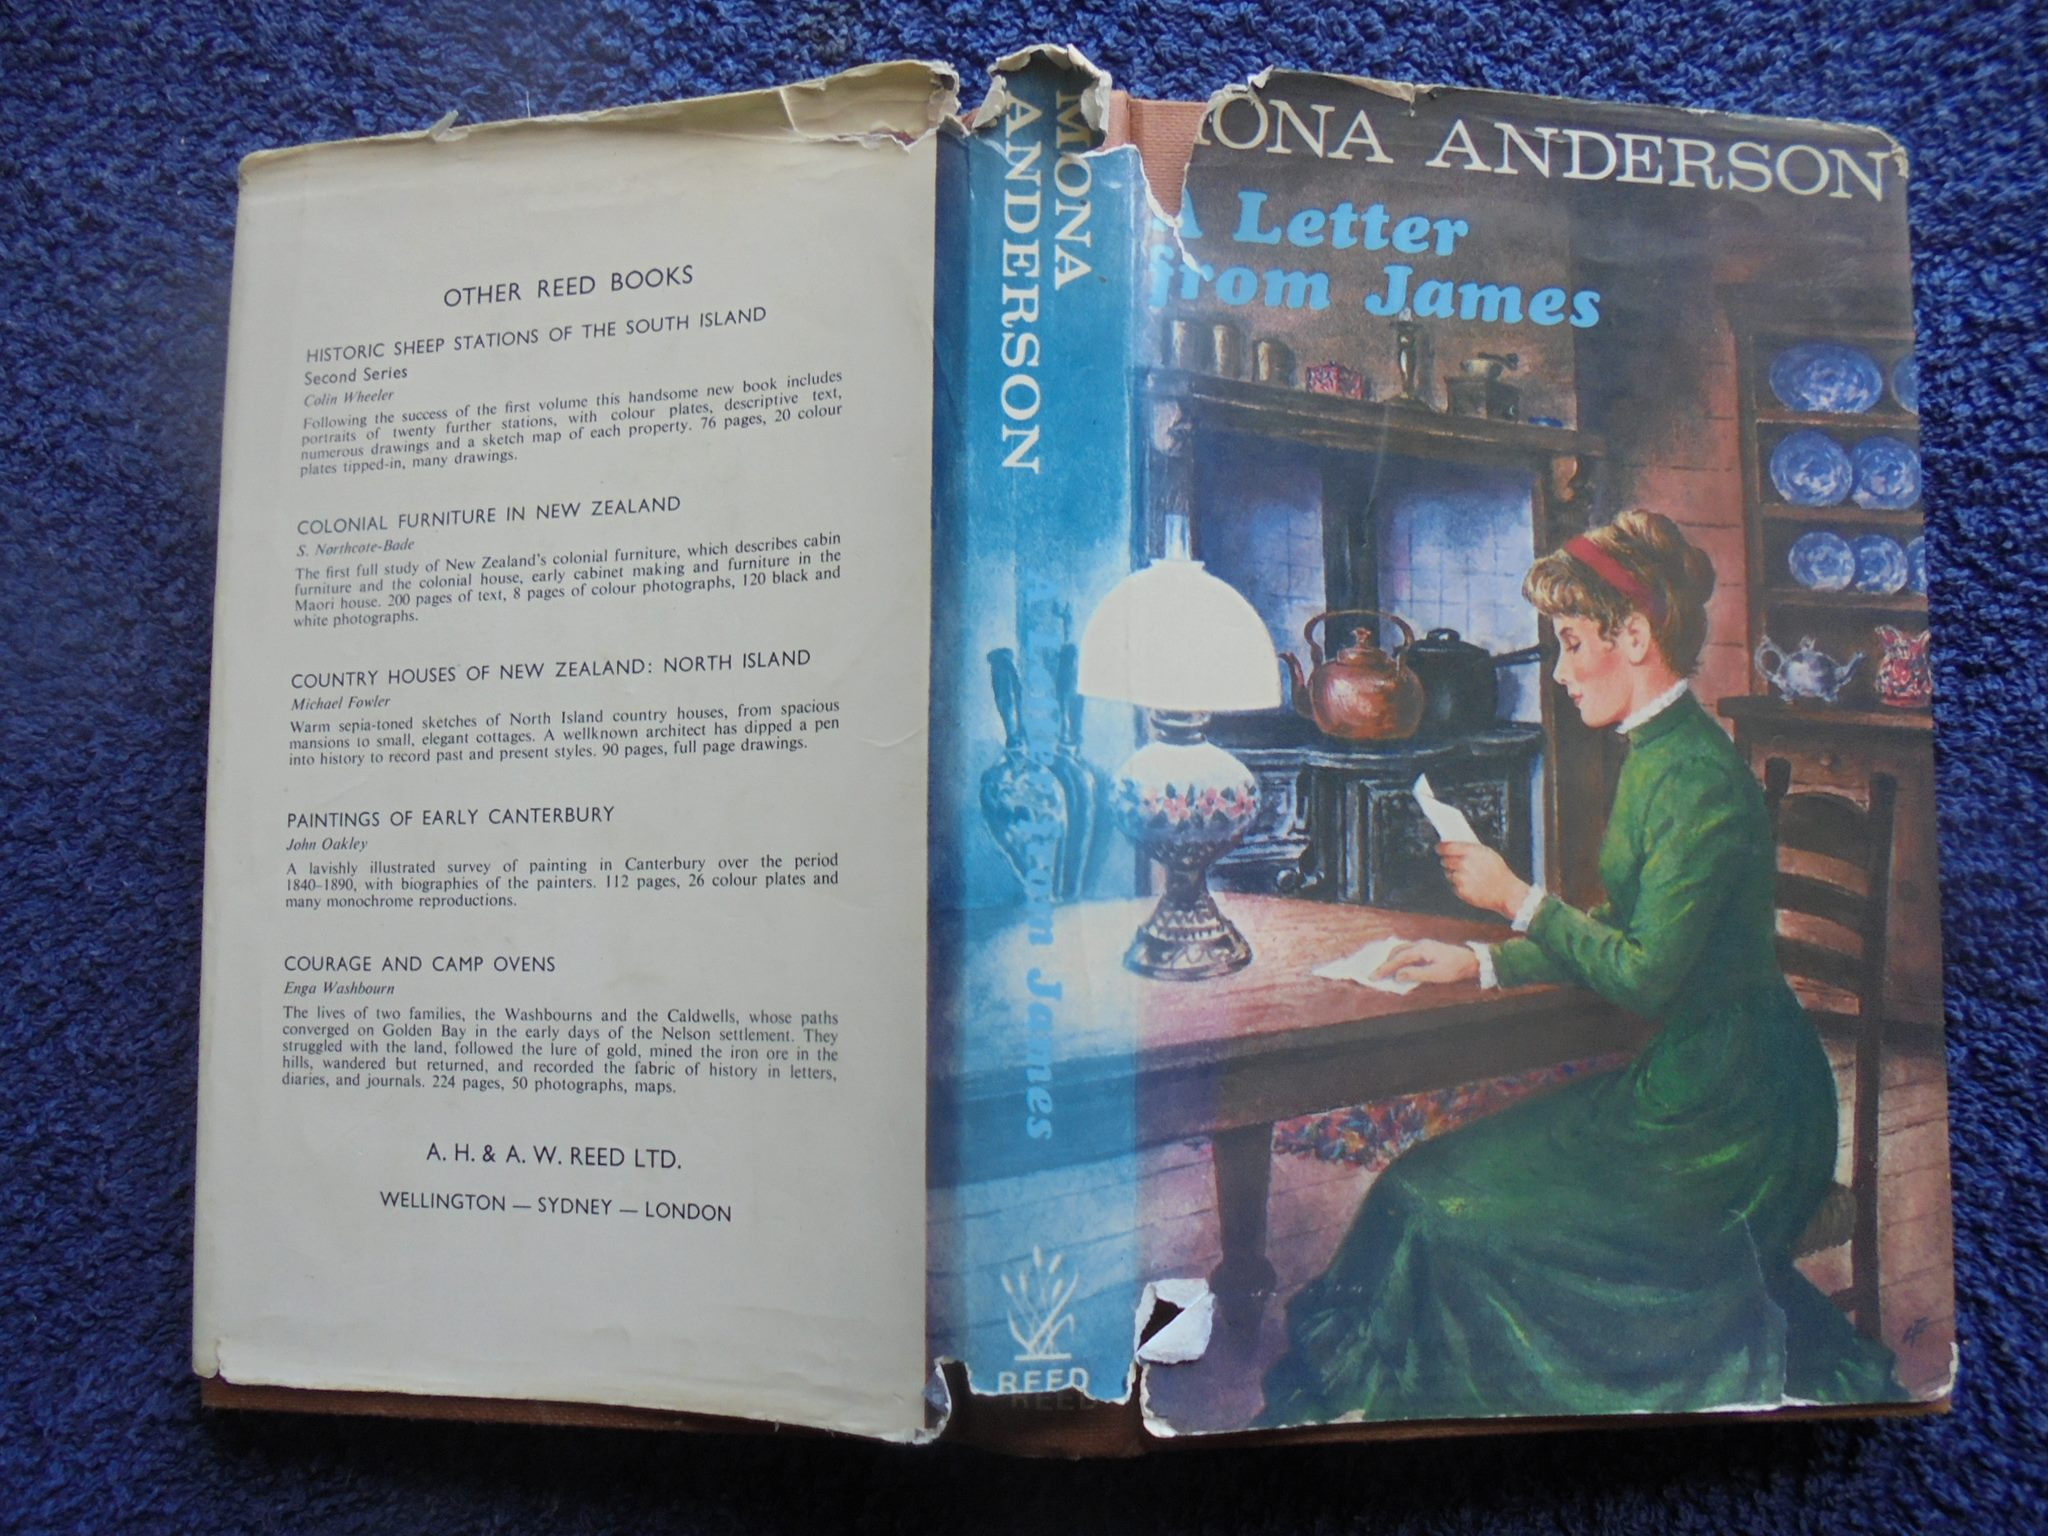 Letter from James By Mona Anderson - (1st edition 1972)